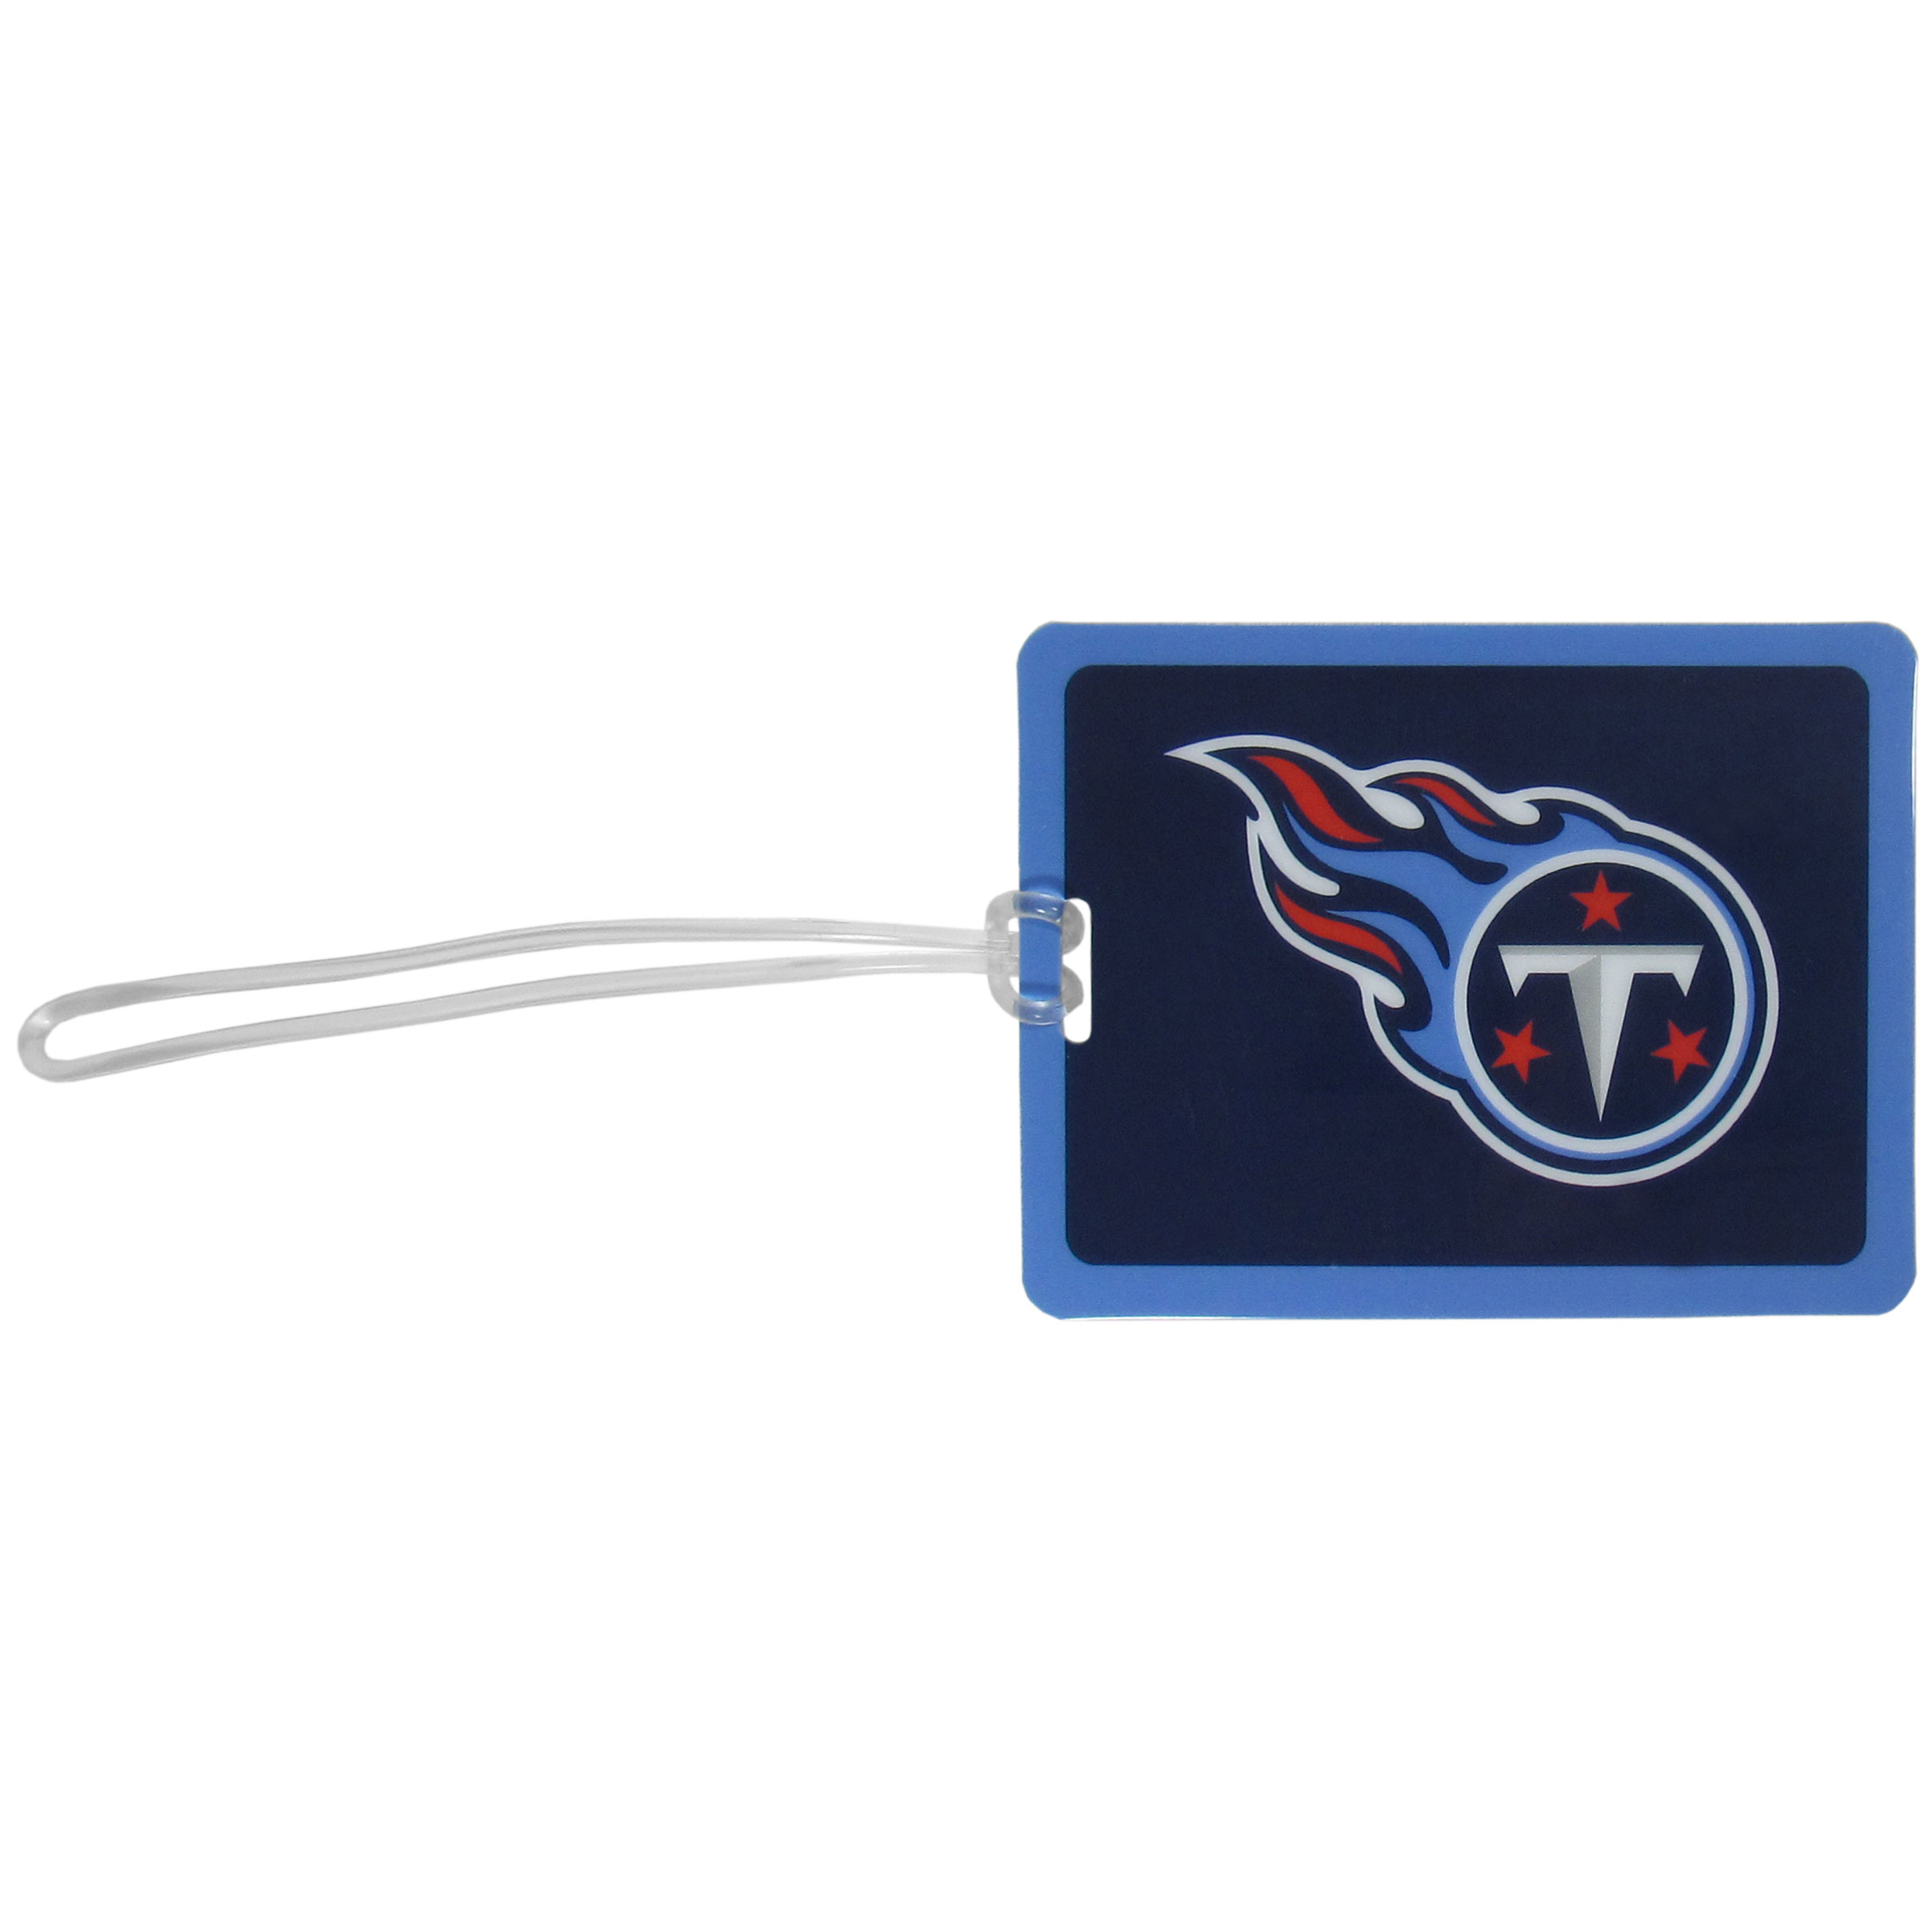 Tennessee Titans Vinyl Luggage Tag - Tired of trying to spot your suitcase or bag in a sea of luggage? Try our large and colorful Tennessee Titans luggage tag set. The tag is 4x3 inches and has a 5 inch cord to attach it easily to your bags, backpacks or luggage. The front of the tag features the team logo in a bright, team colored background and you can write you name, address and phone number on the back of the tag.